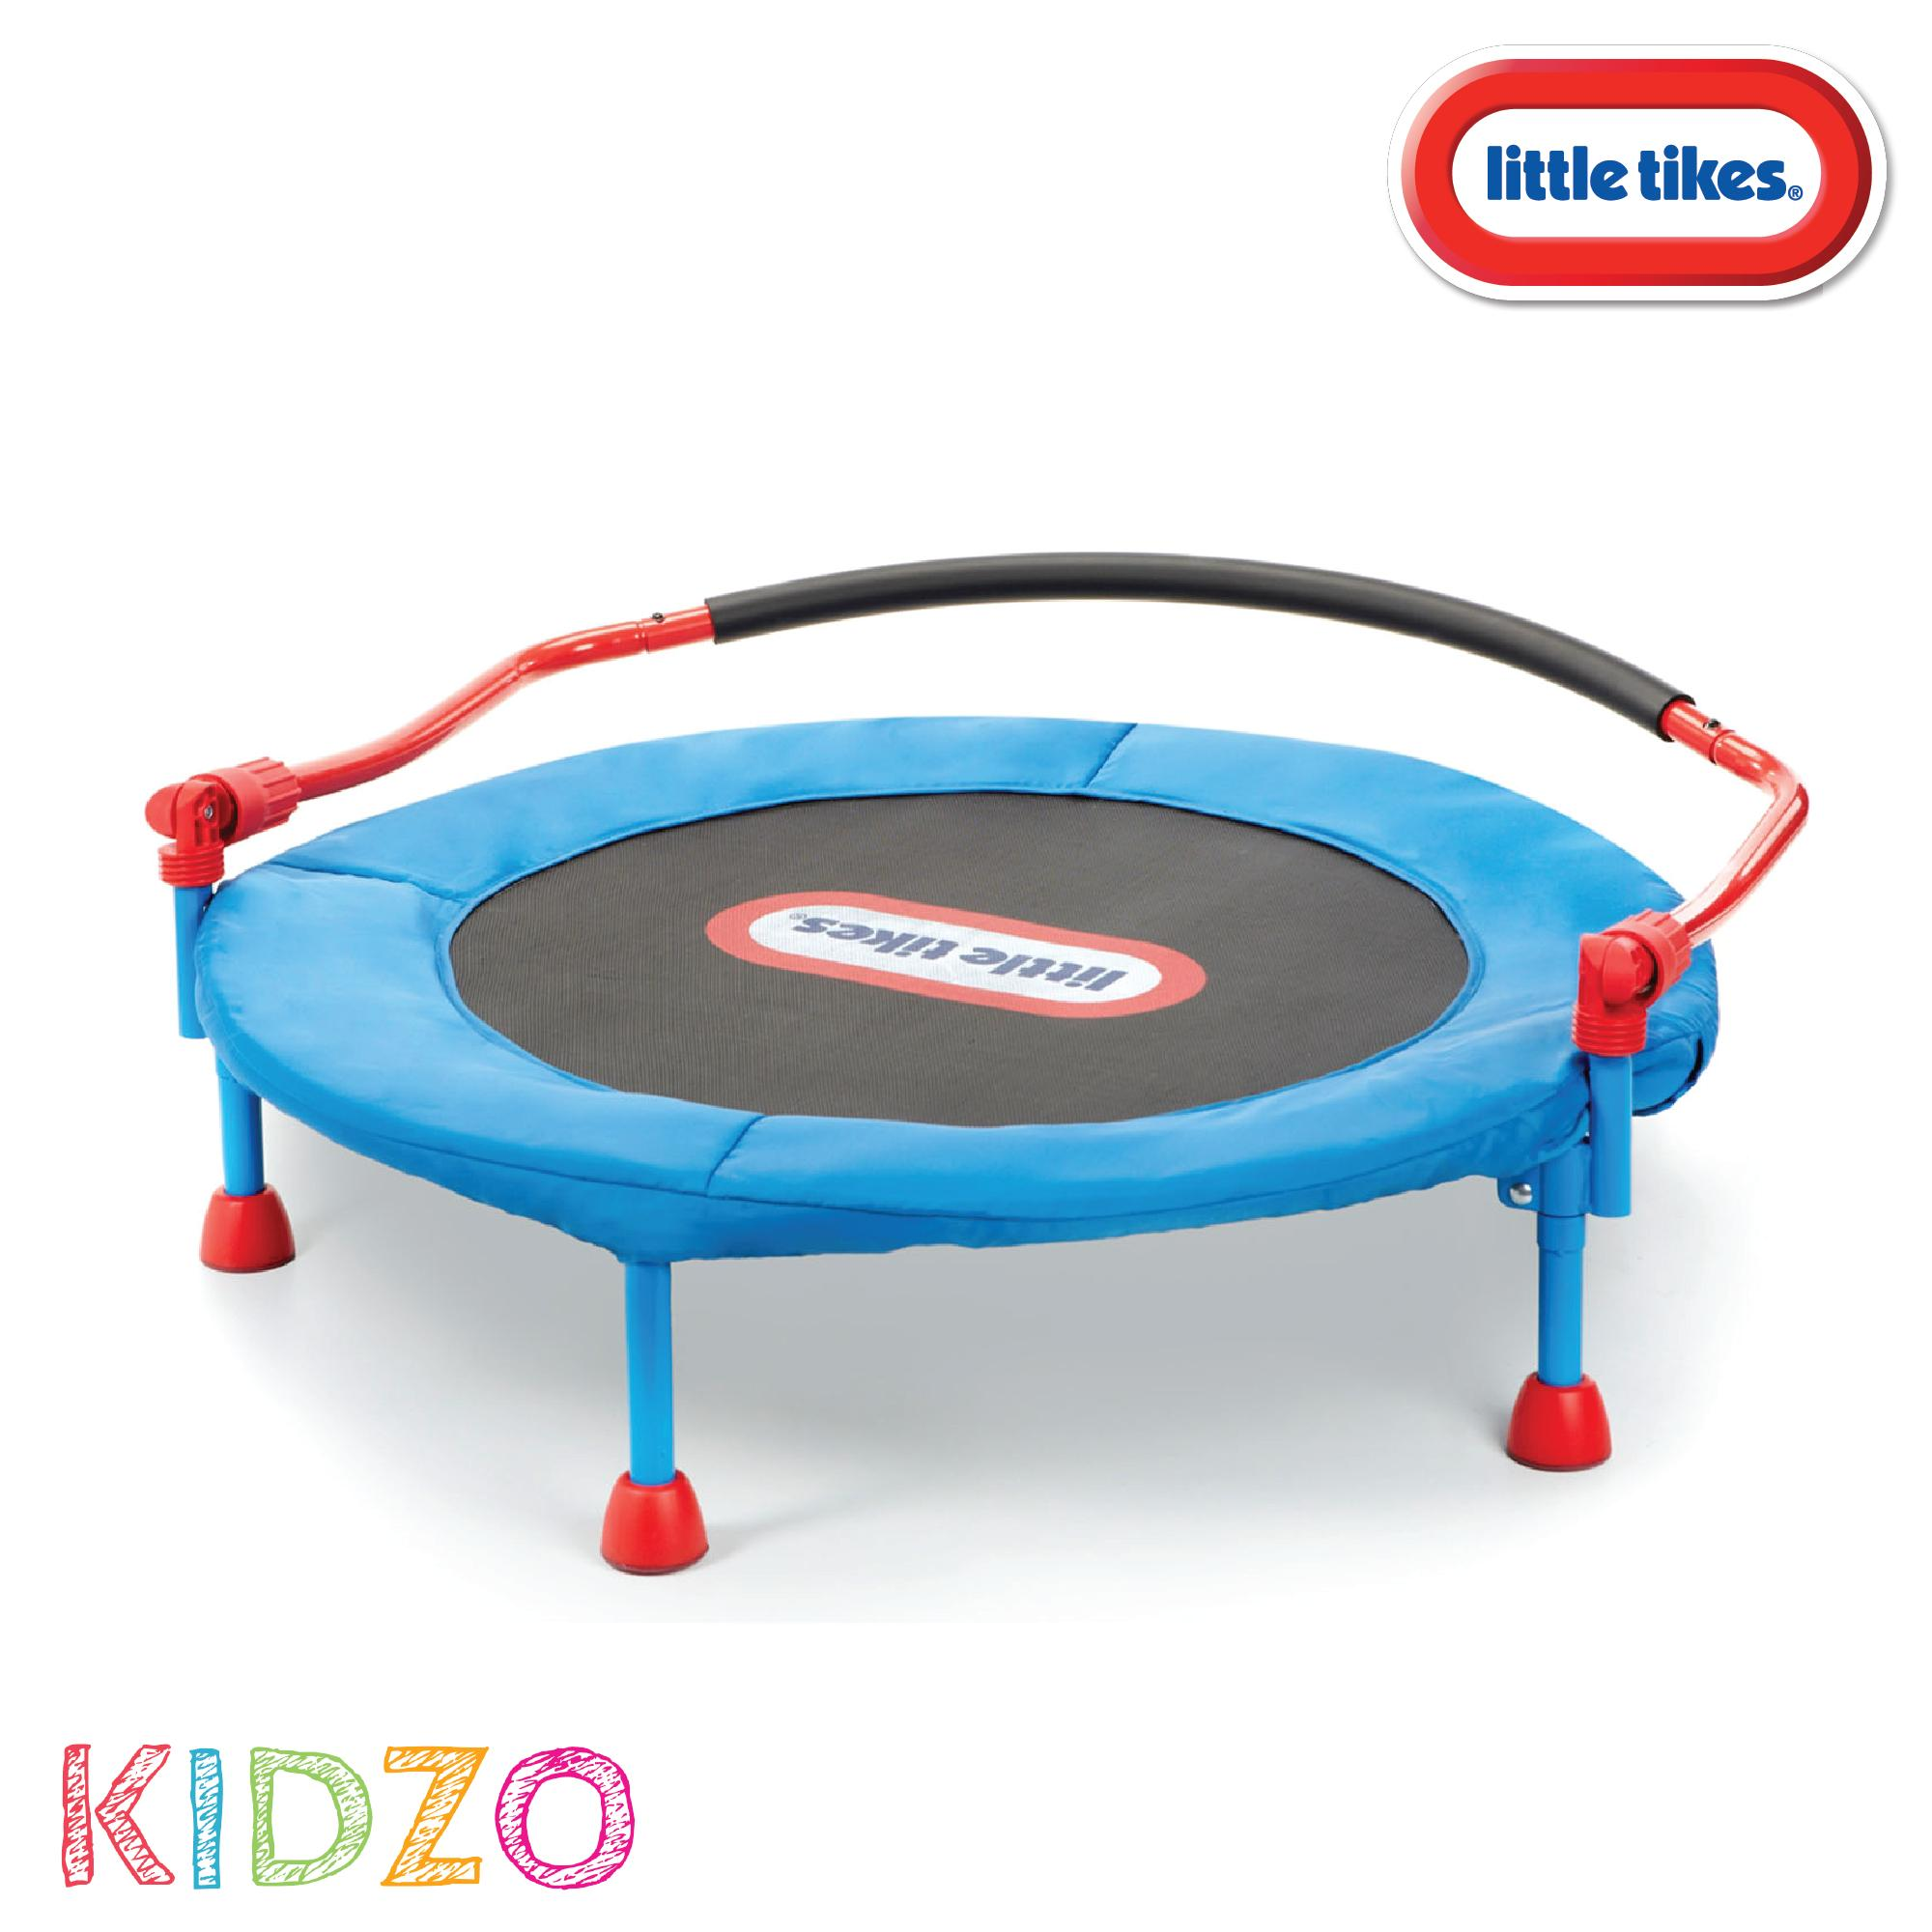 cceccdf0b Trampolines - Buy Trampolines at Best Price in Singapore